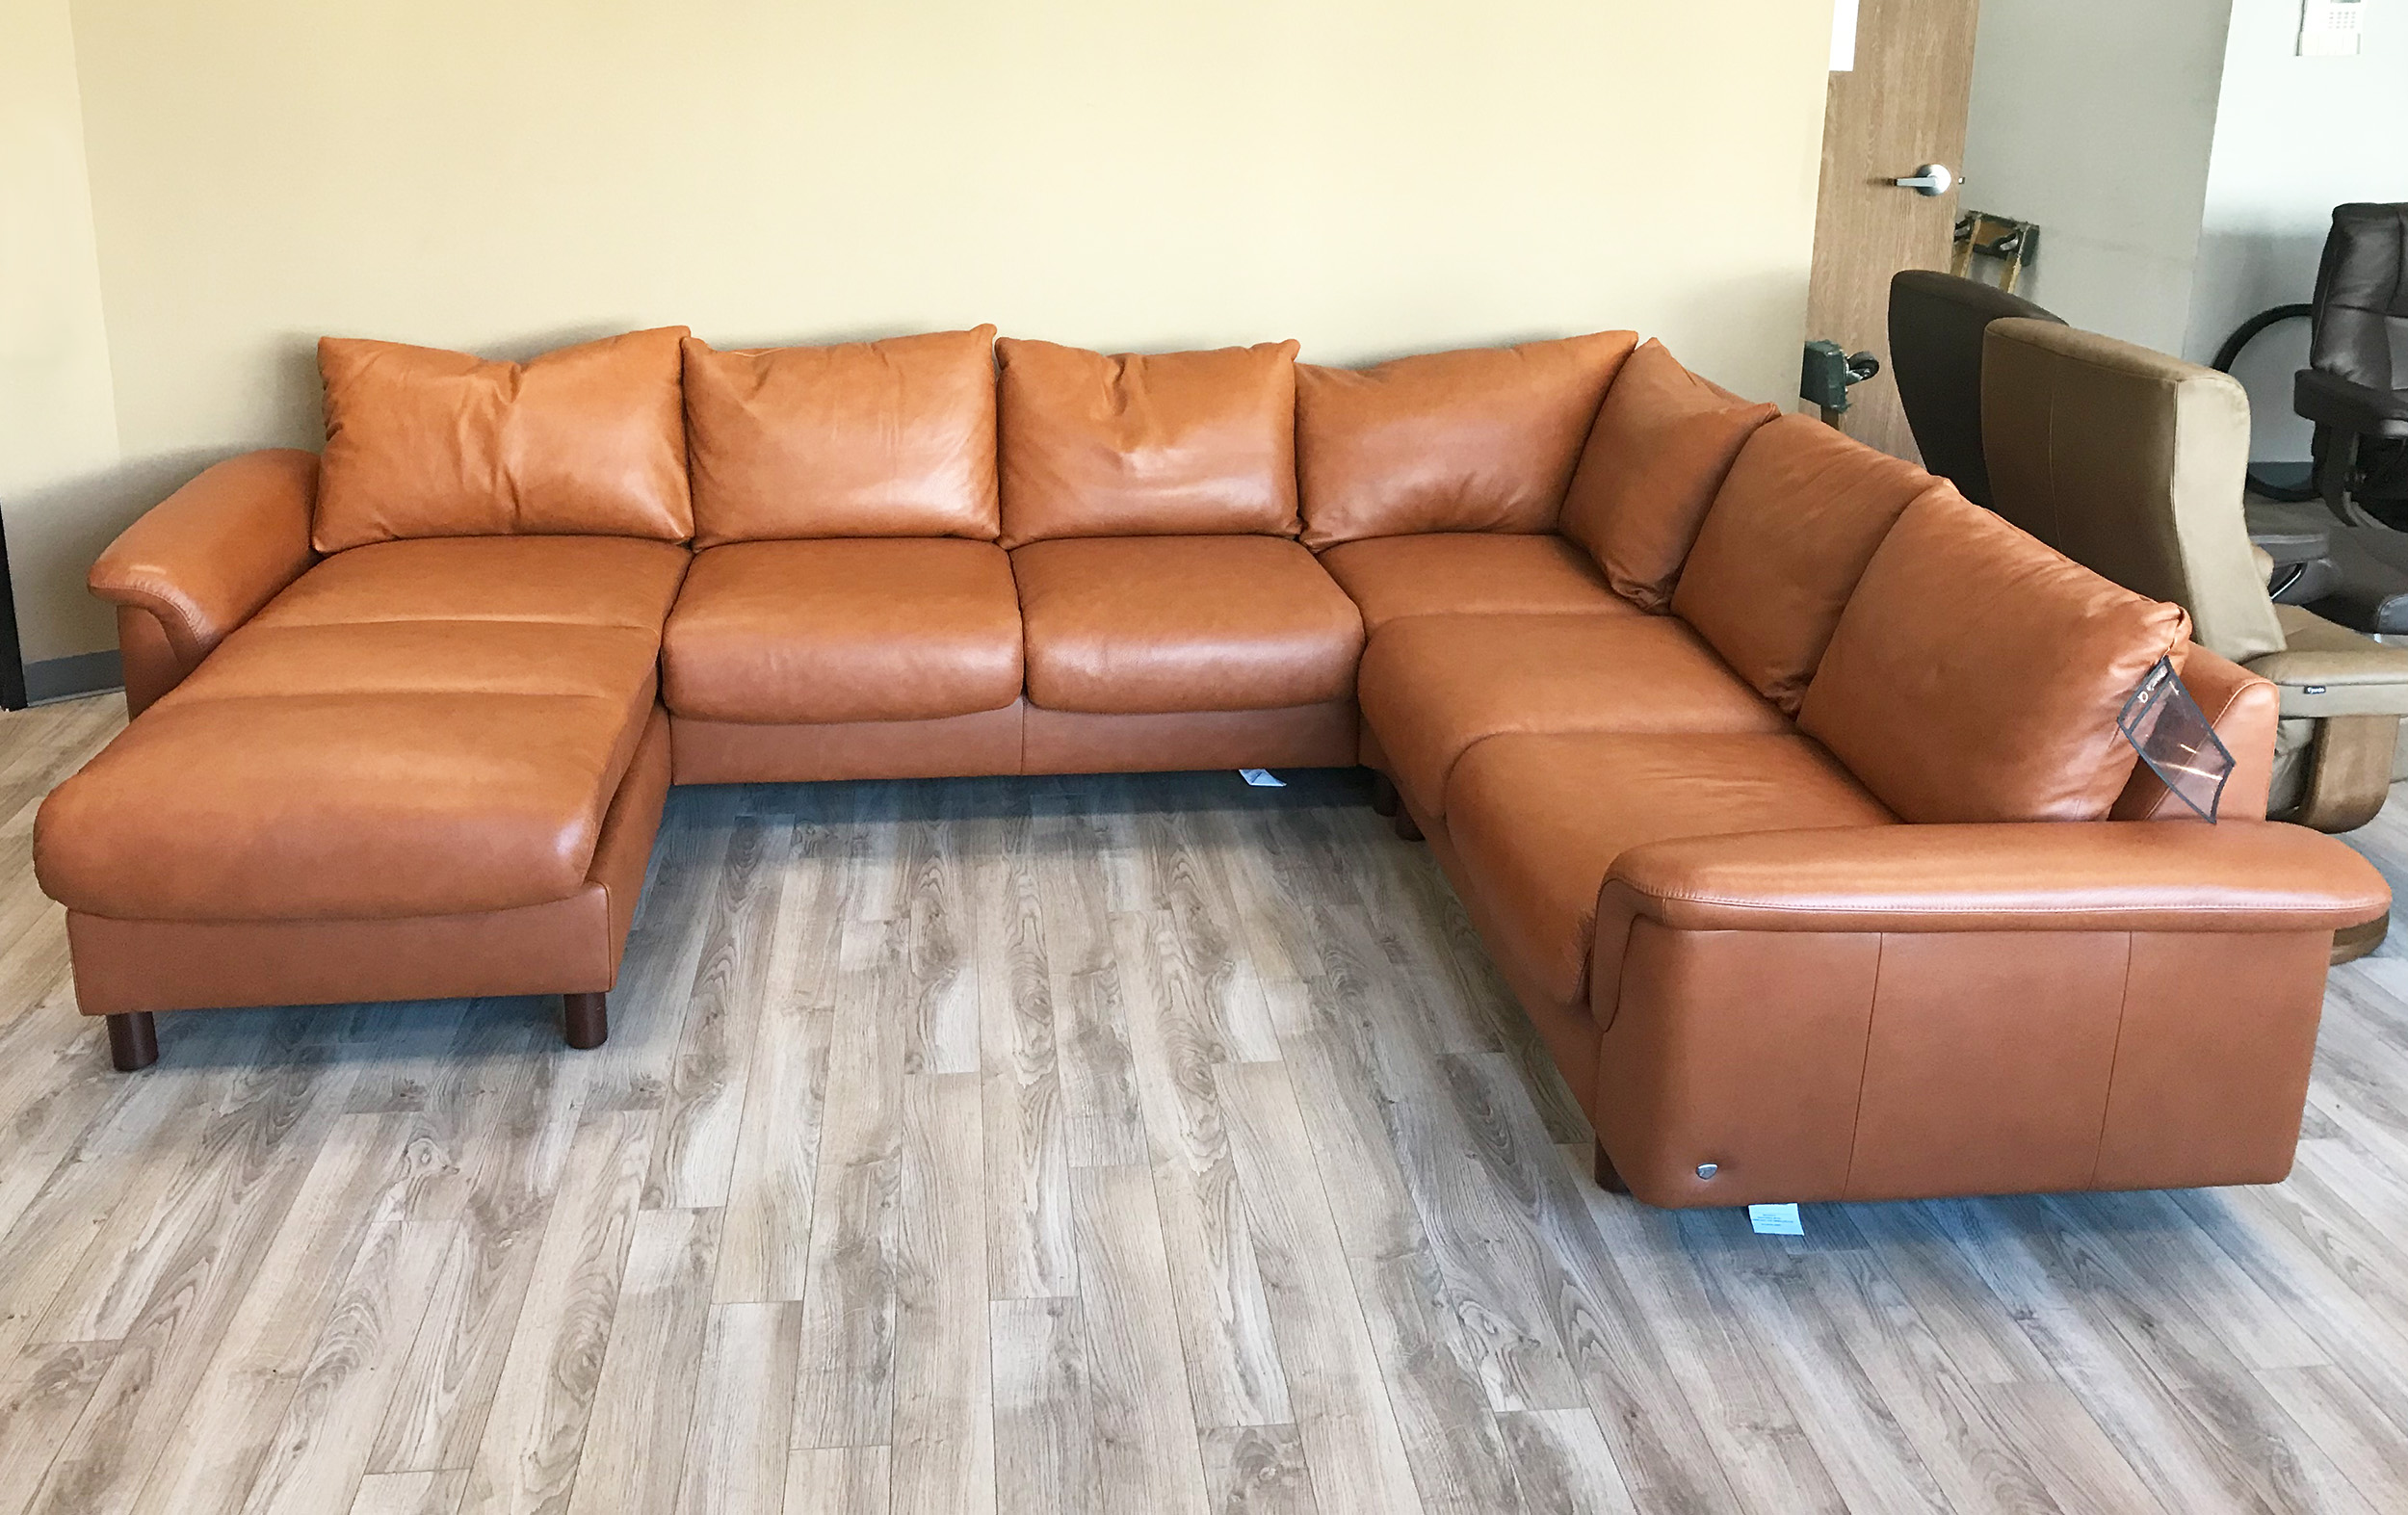 Stressless E300 6 Seat Sectional Sofa with LongSeat in